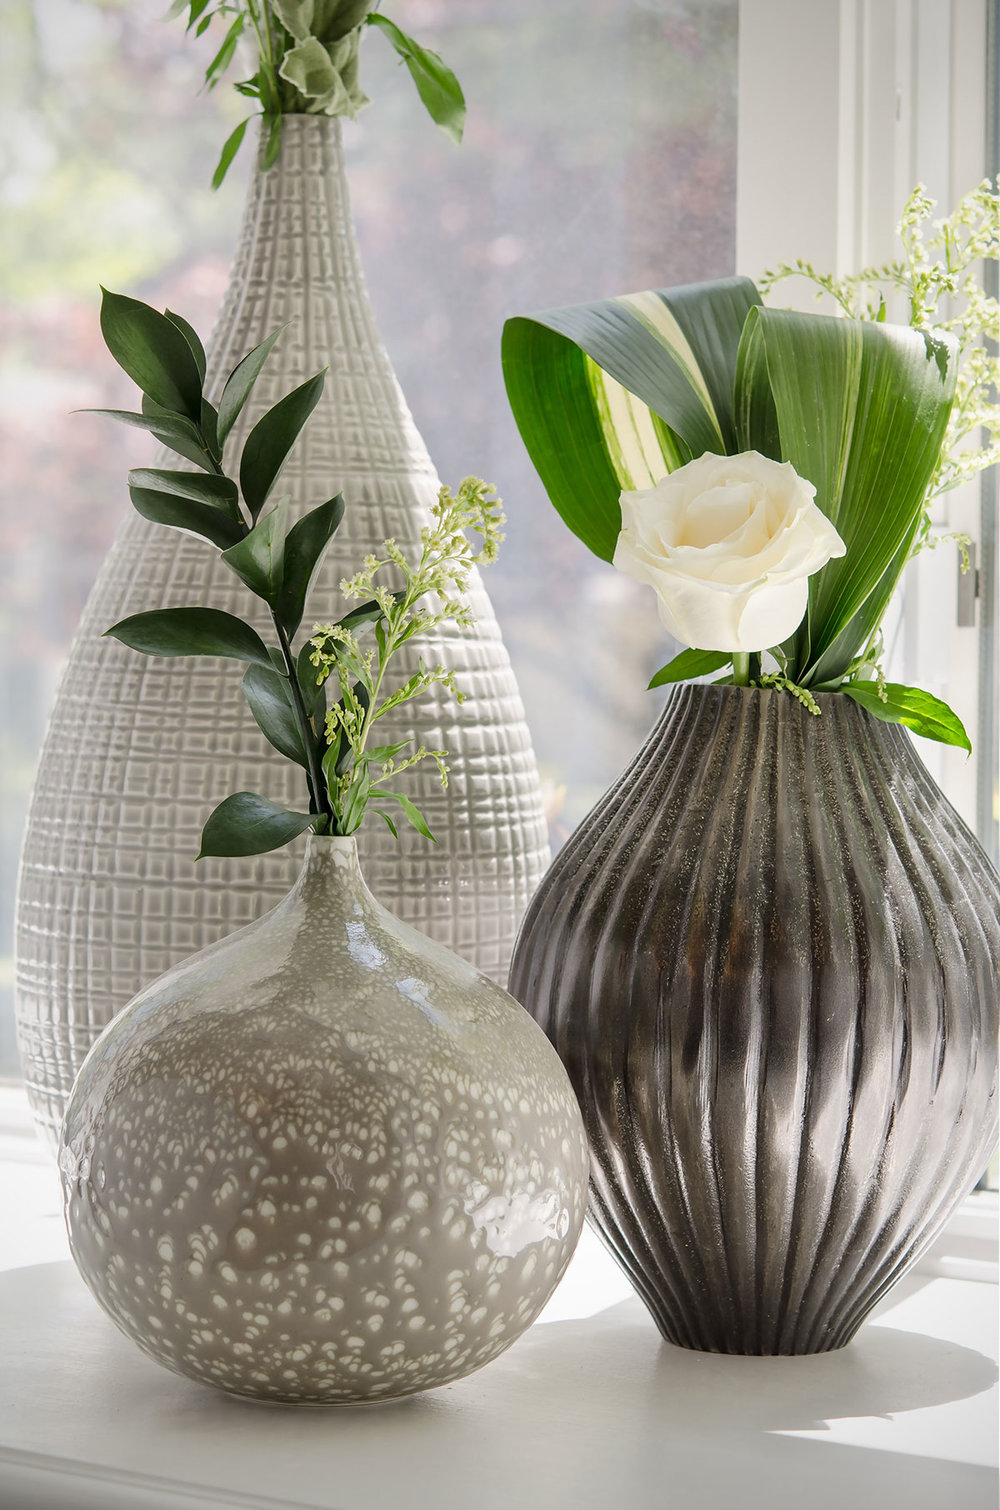 Braintree, MA interior design grouping of textured vases